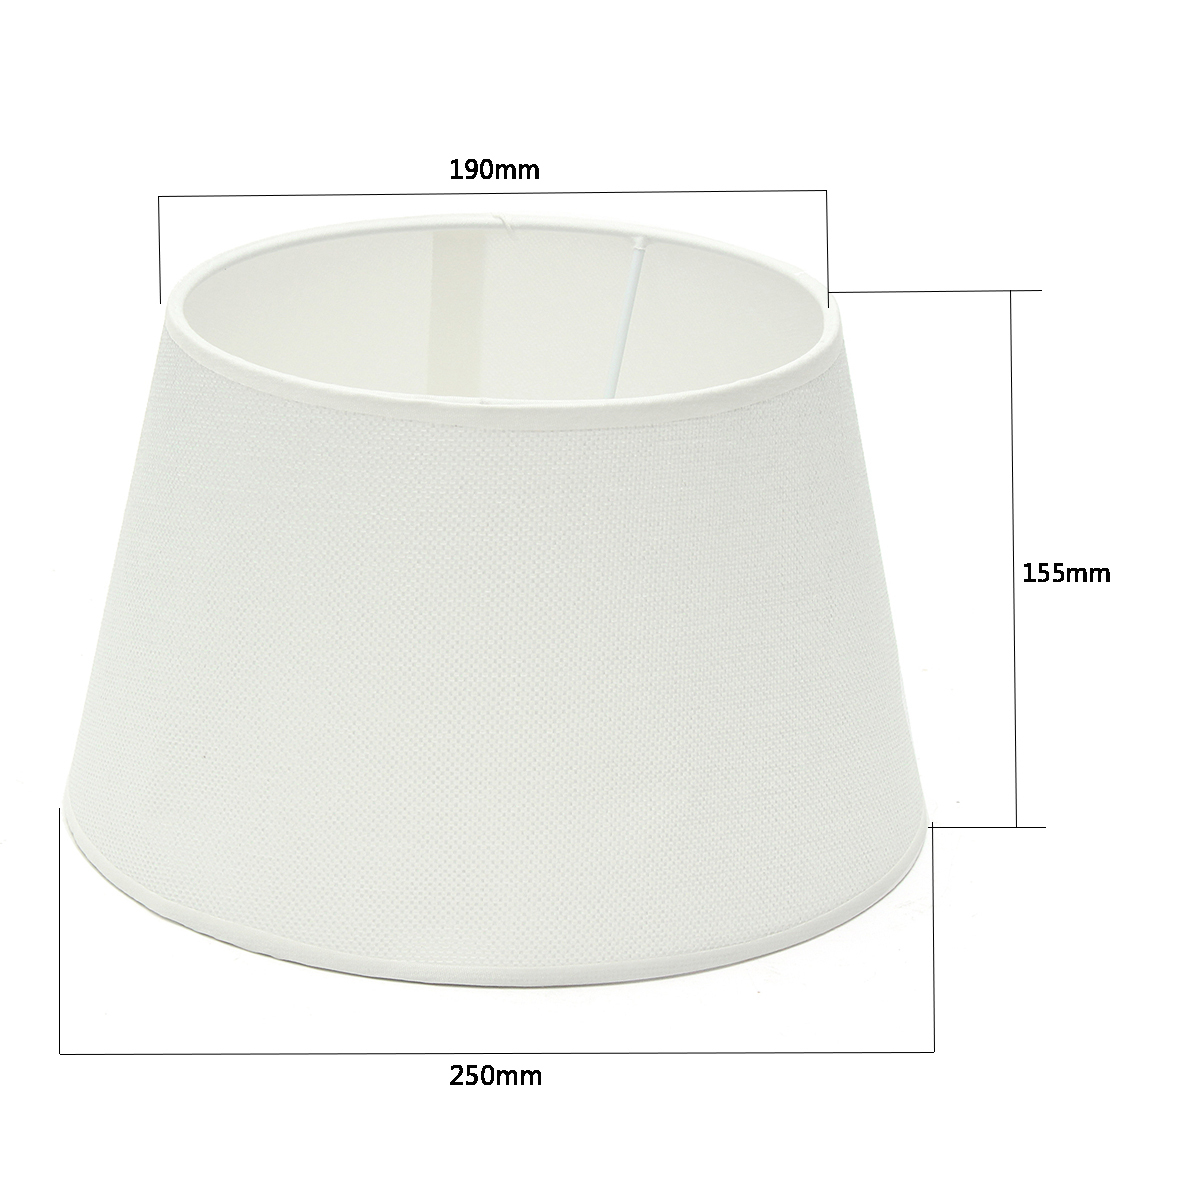 Cotton Textured Fabric PVC Linen Shade Desk Ceiling Lampshade 255*190*155mm